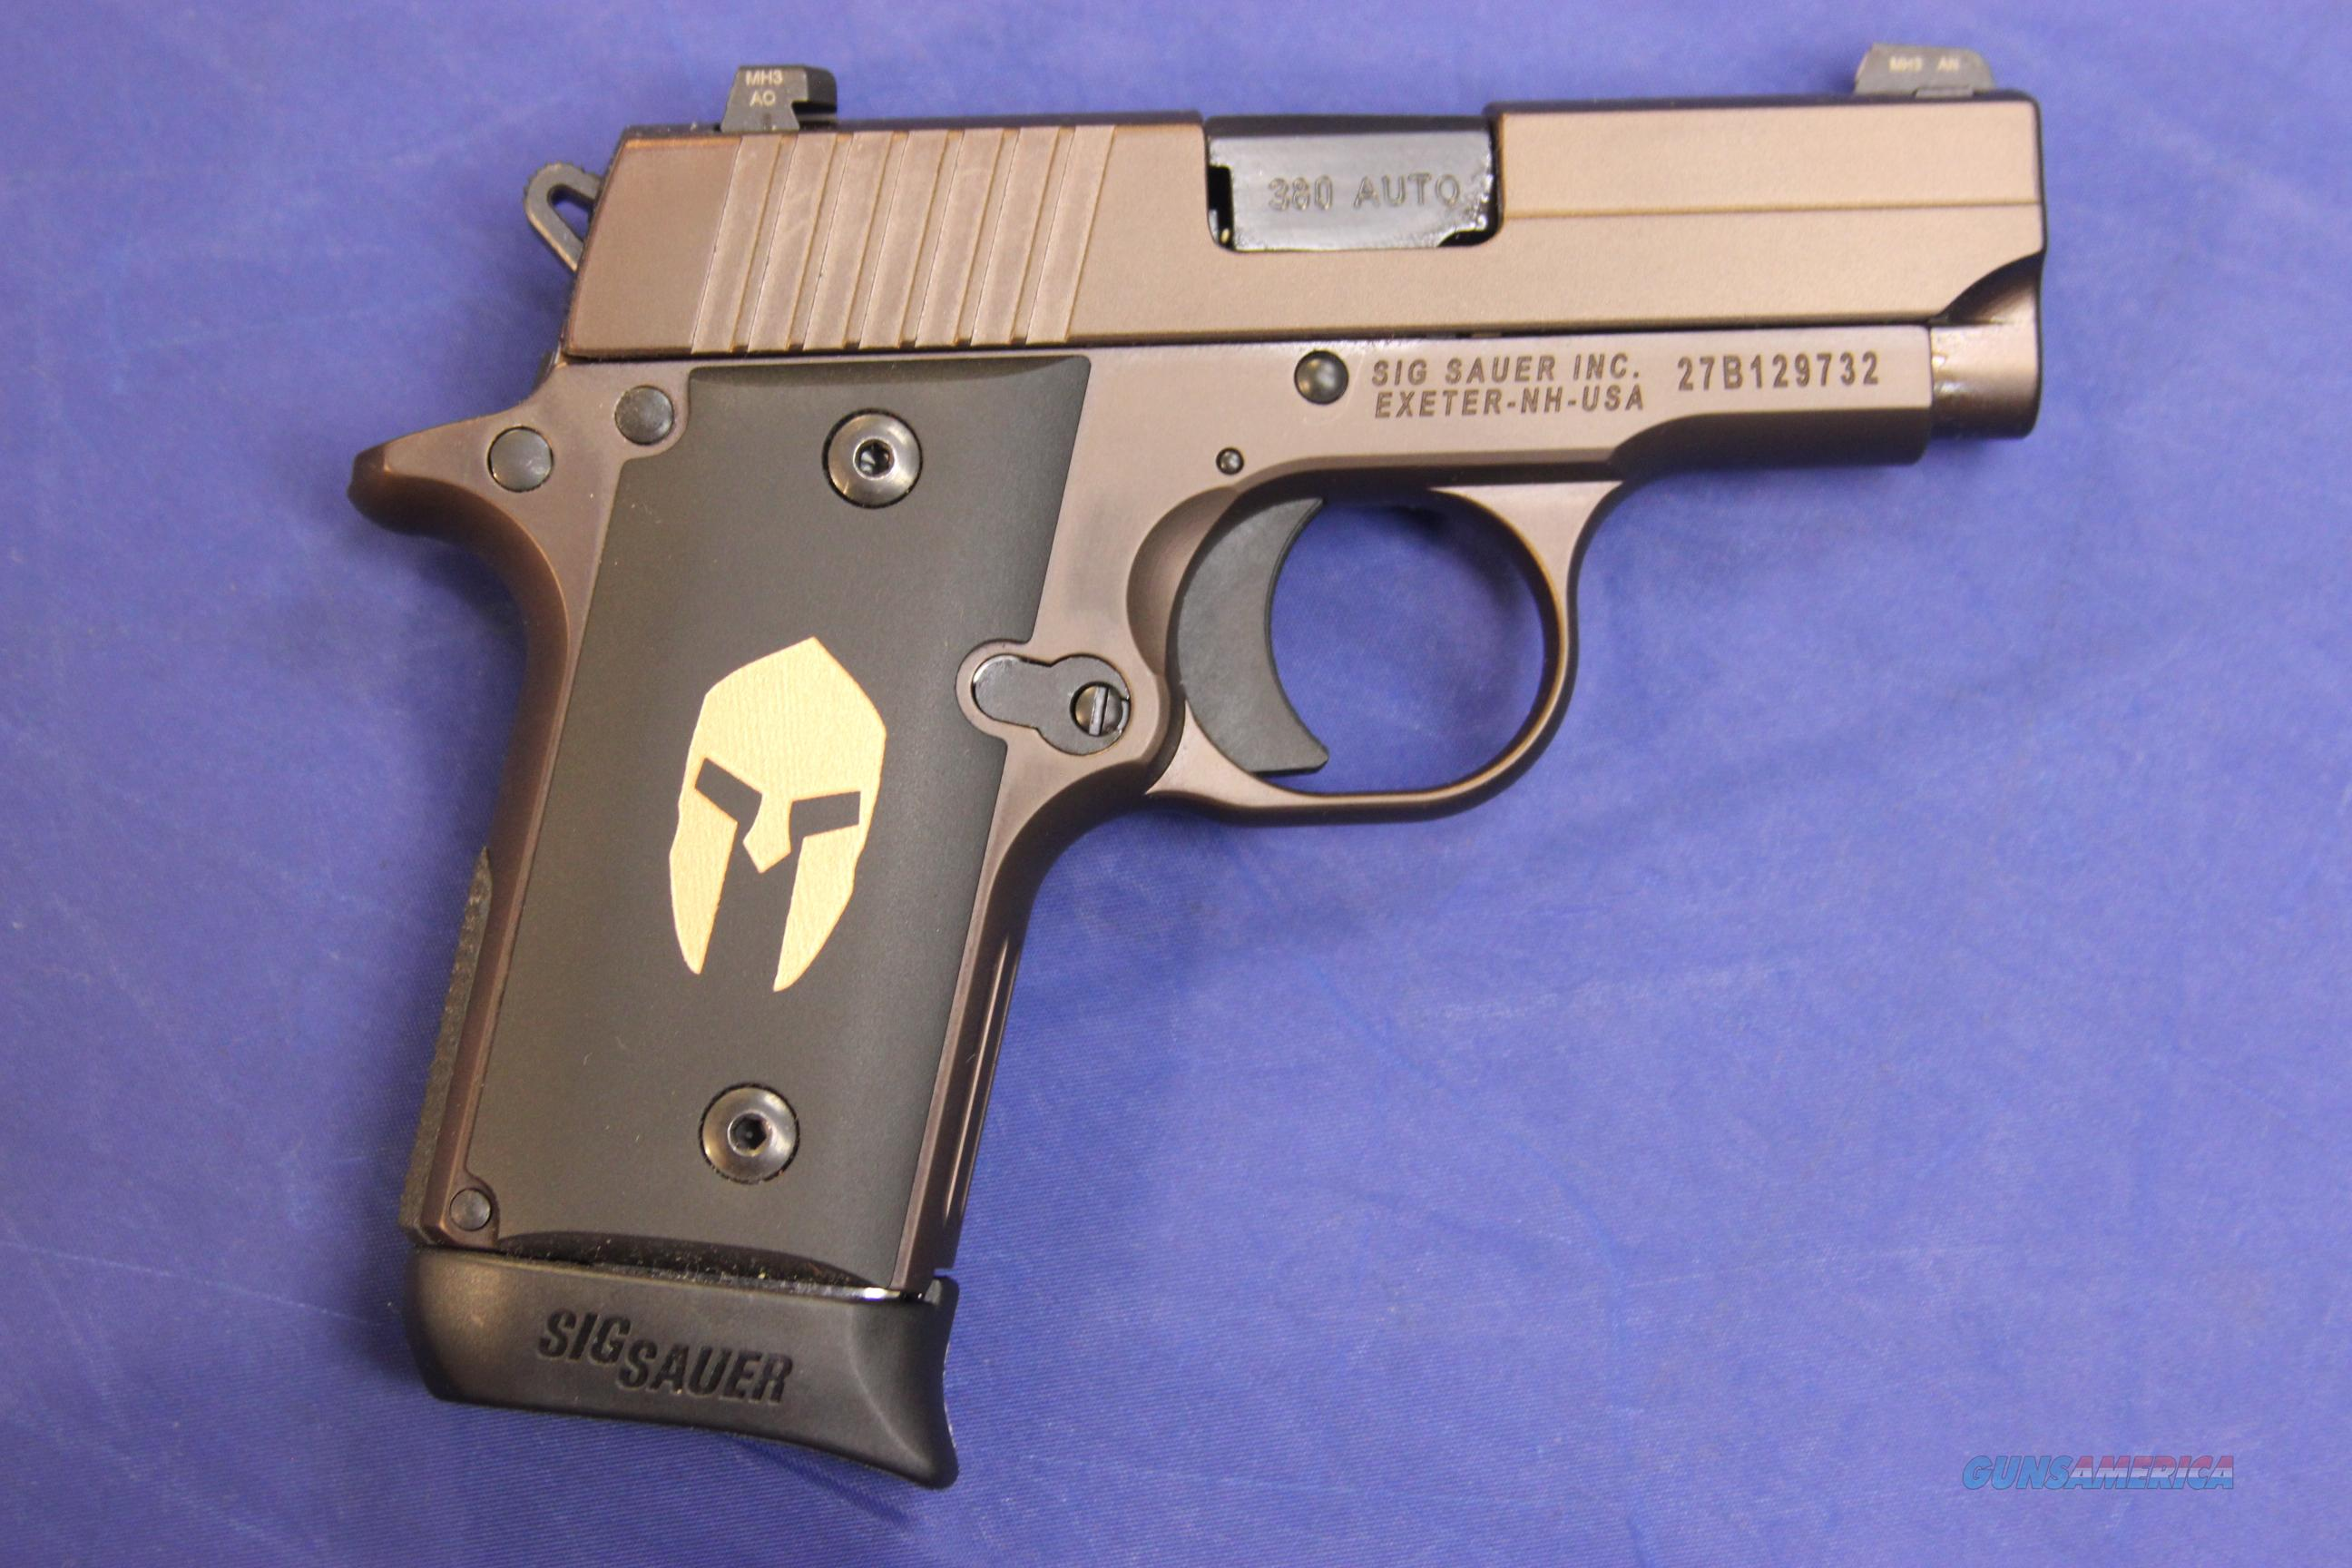 SIG SAUER P238 SPARTAN .380 ACP - NEW - FREE SHIPPING!  Guns > Pistols > Sig - Sauer/Sigarms Pistols > P238